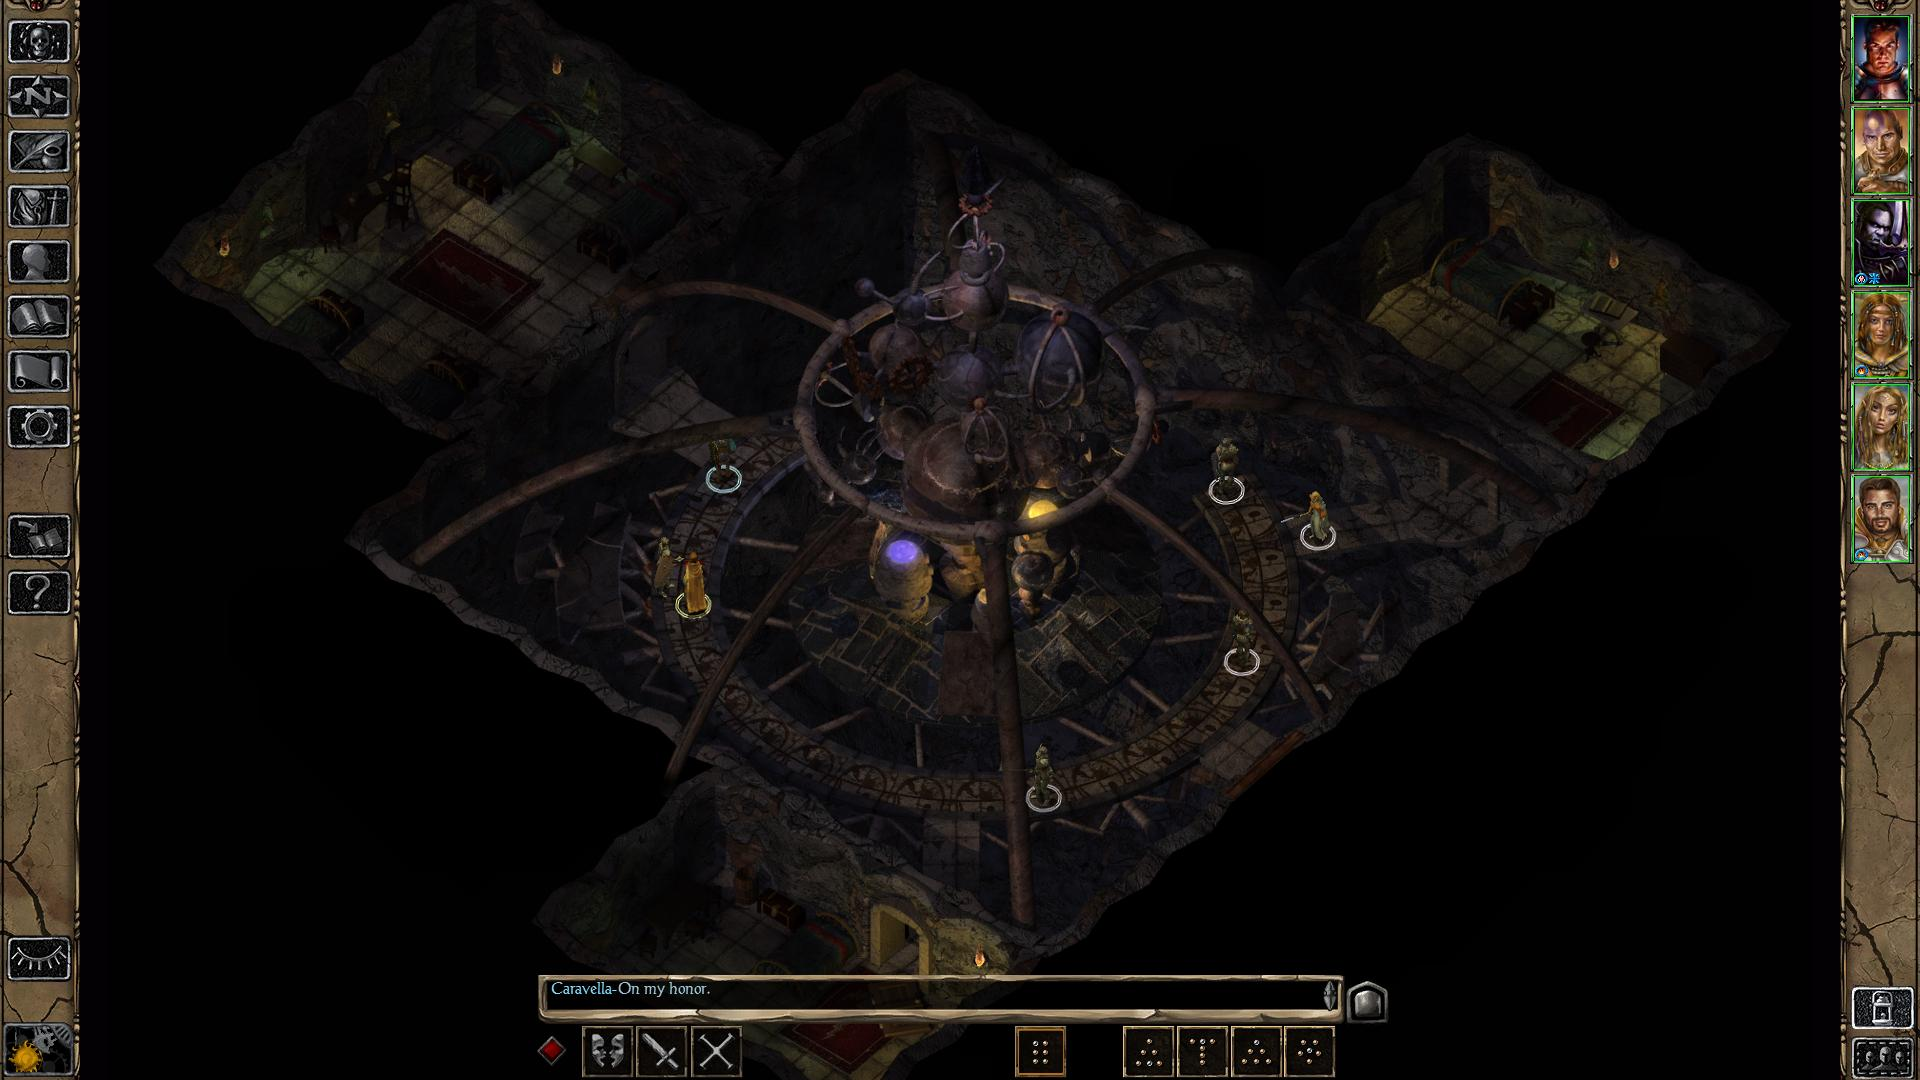 Baldur's Gate 2: Enhanced Edition PC and Mac Release Date Confirmed, First Gameplay Trailer Now Available #28620